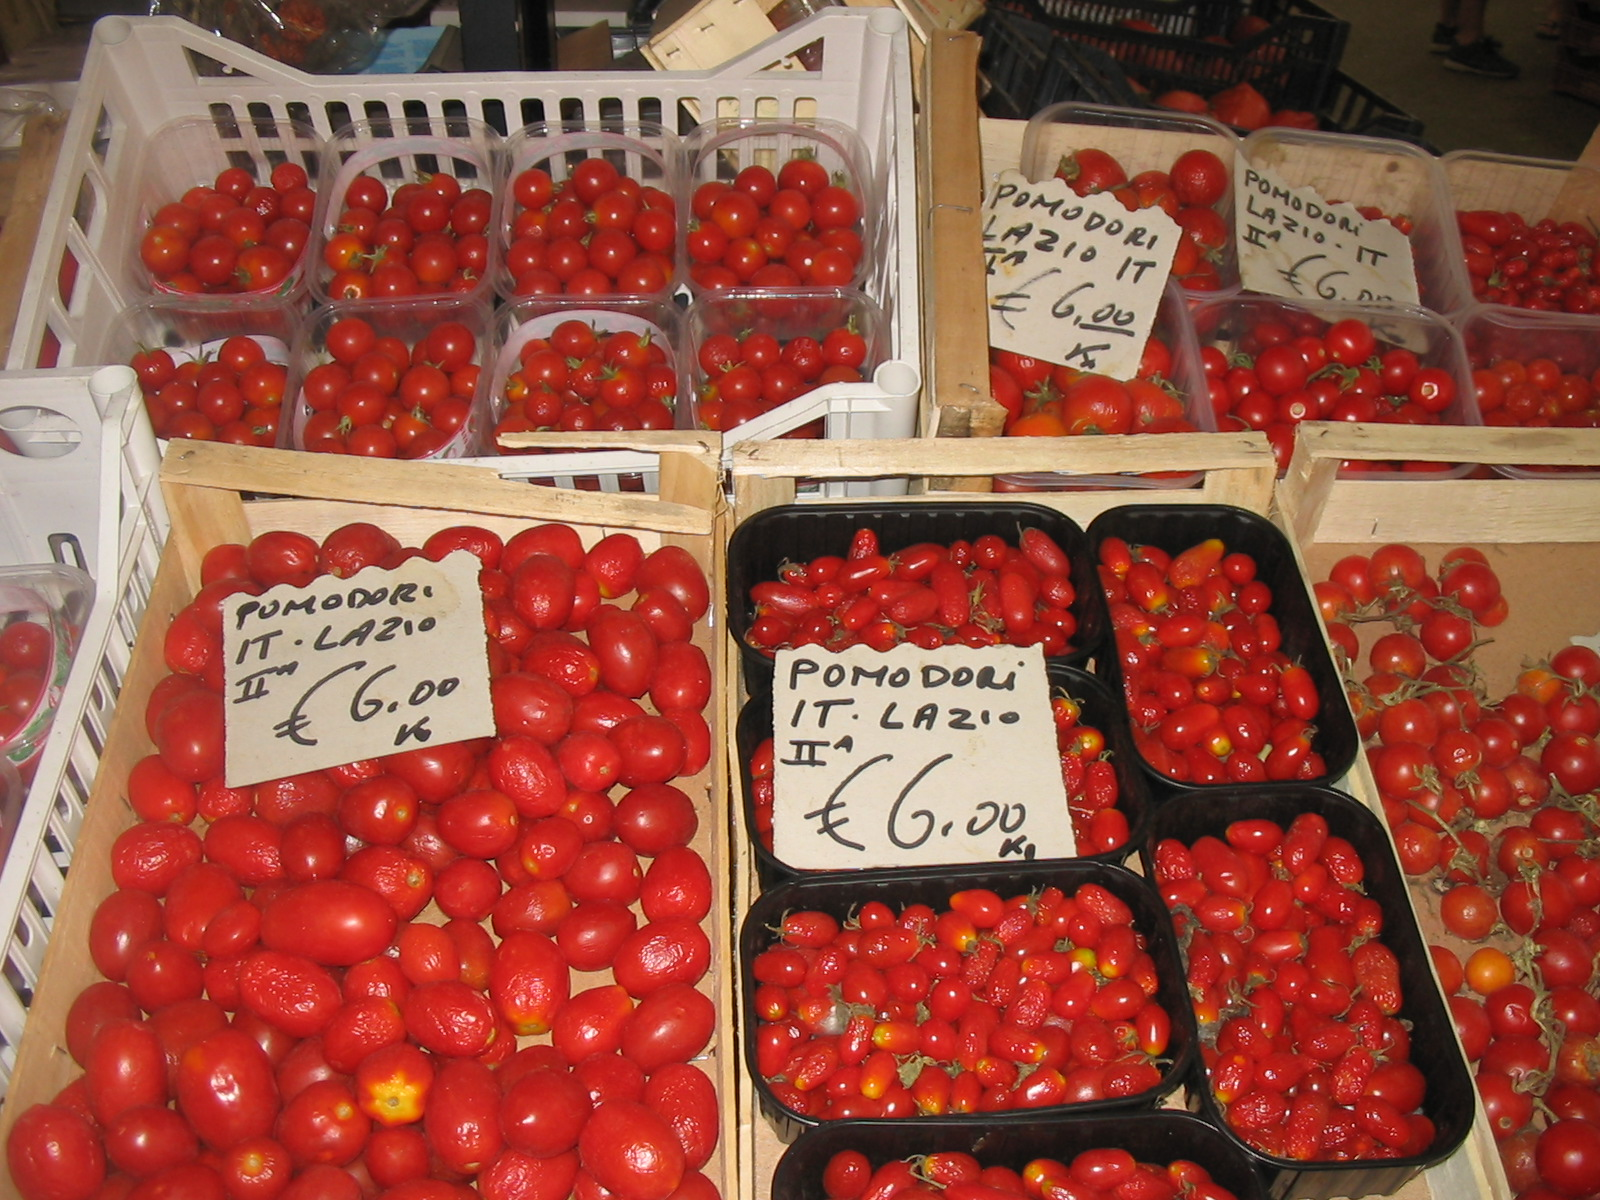 Tomatoes from Lazio; Photo, Susan McCrory